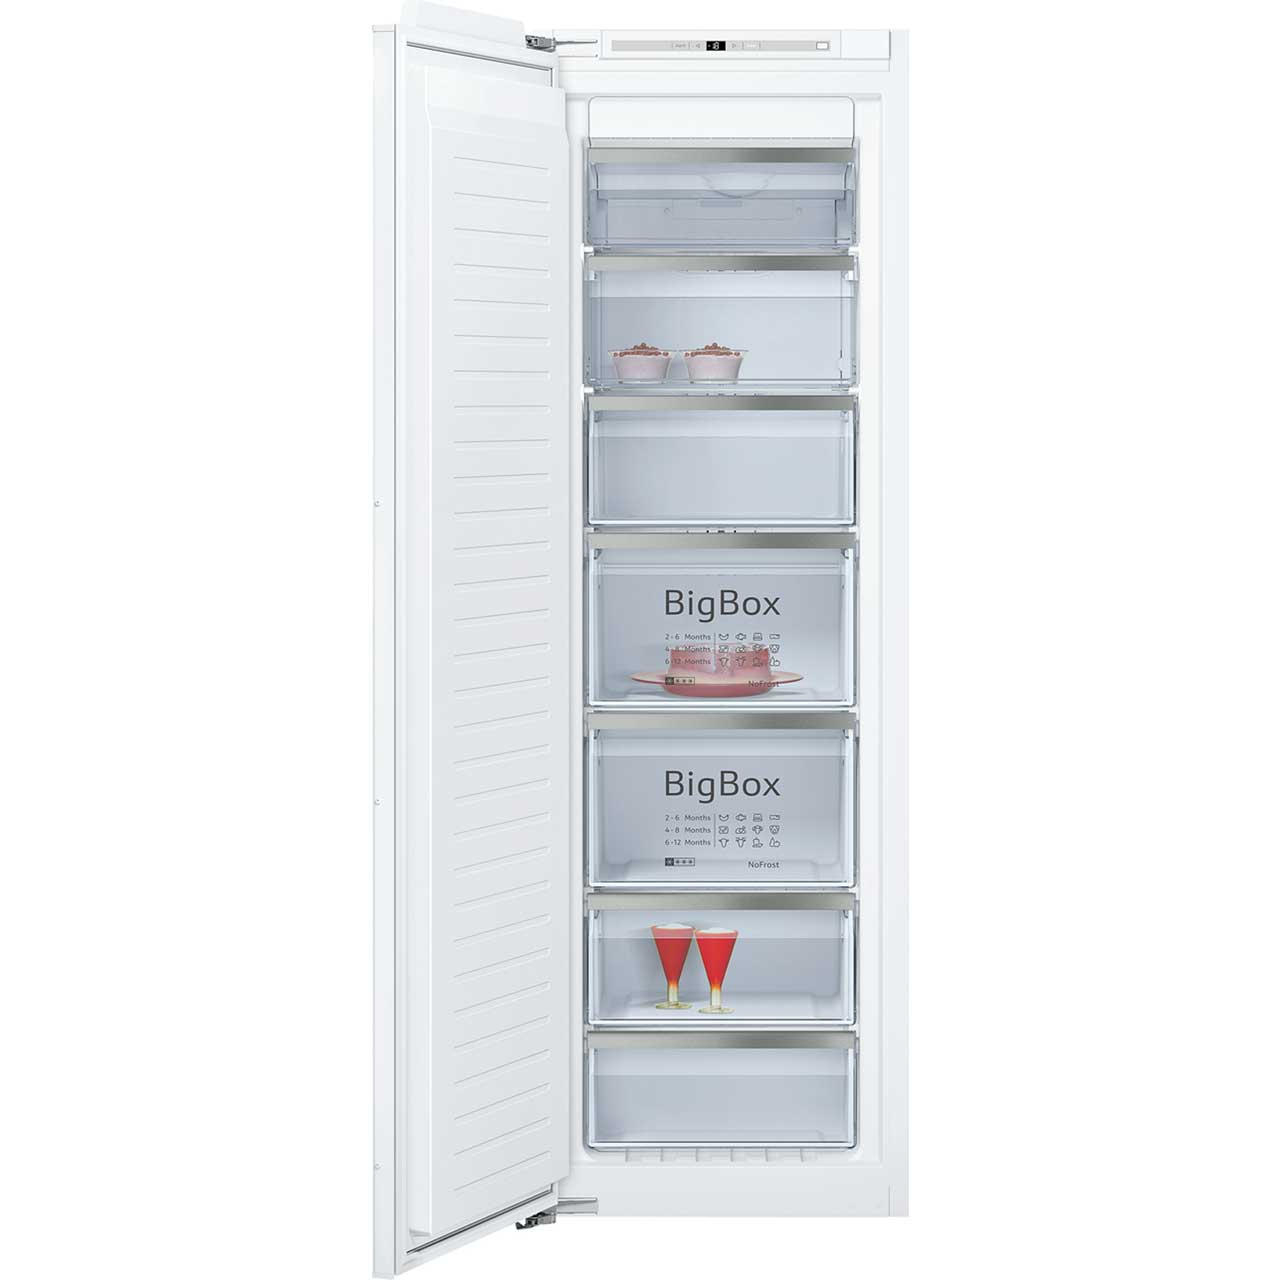 Neff GI7813E30G Integrated Freezer Frost Free in White